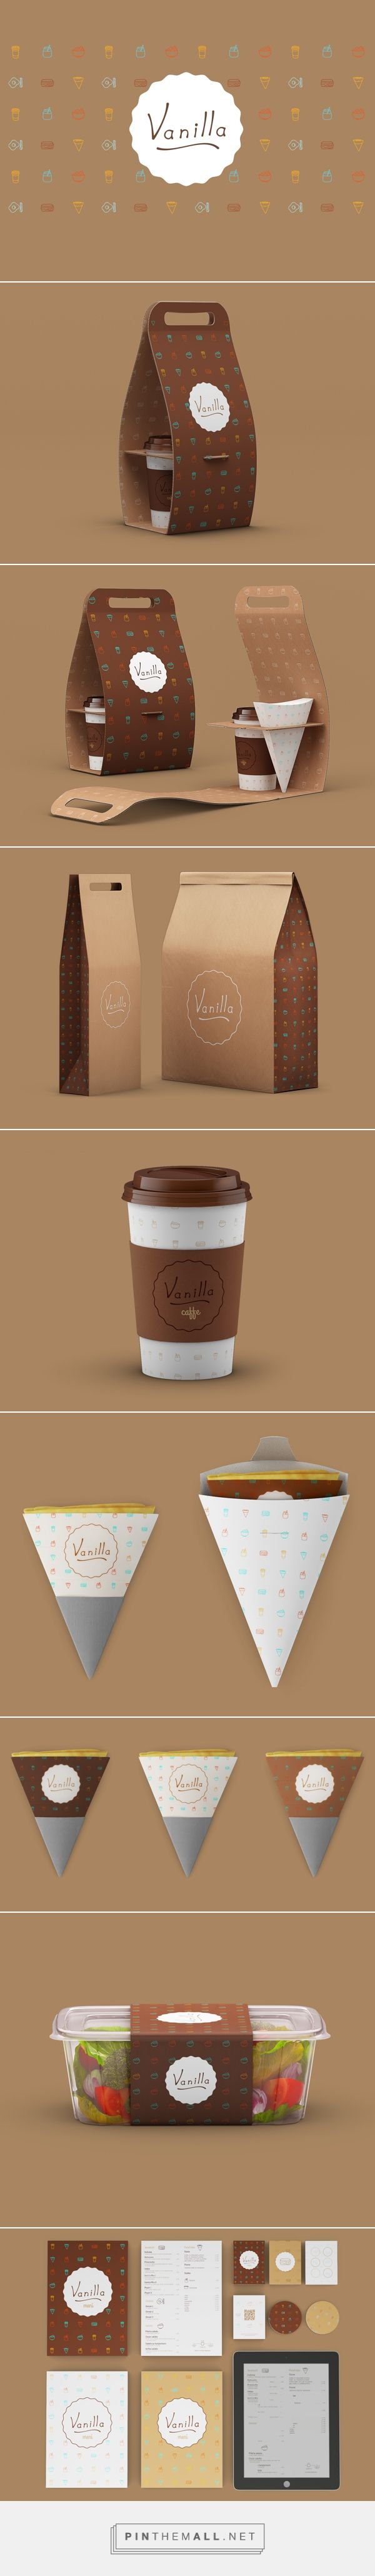 Vanilla identity packaging branding on Behance by Mario Dragic curated by…